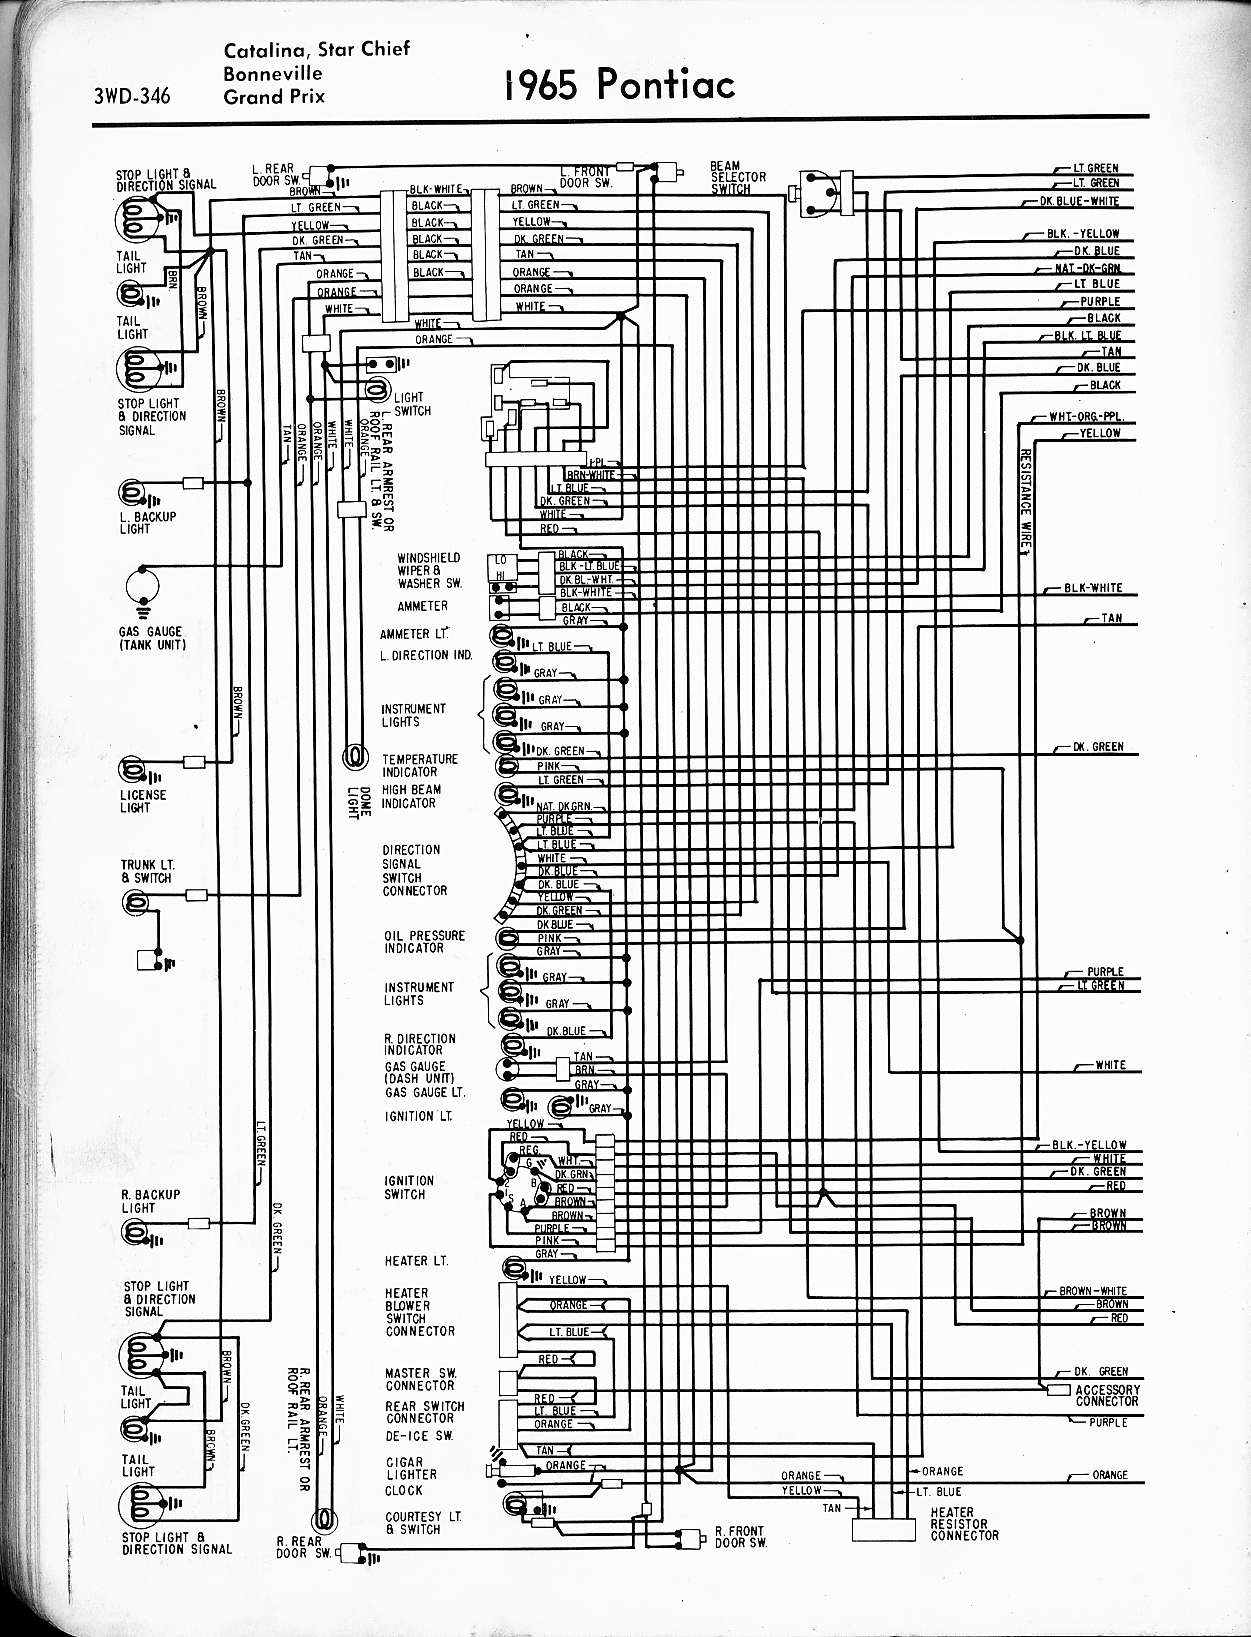 MWire5765 346 68 bonneville wiring diagram 100 images 1965 pontiac wiring 1967 gto wiring diagram at crackthecode.co